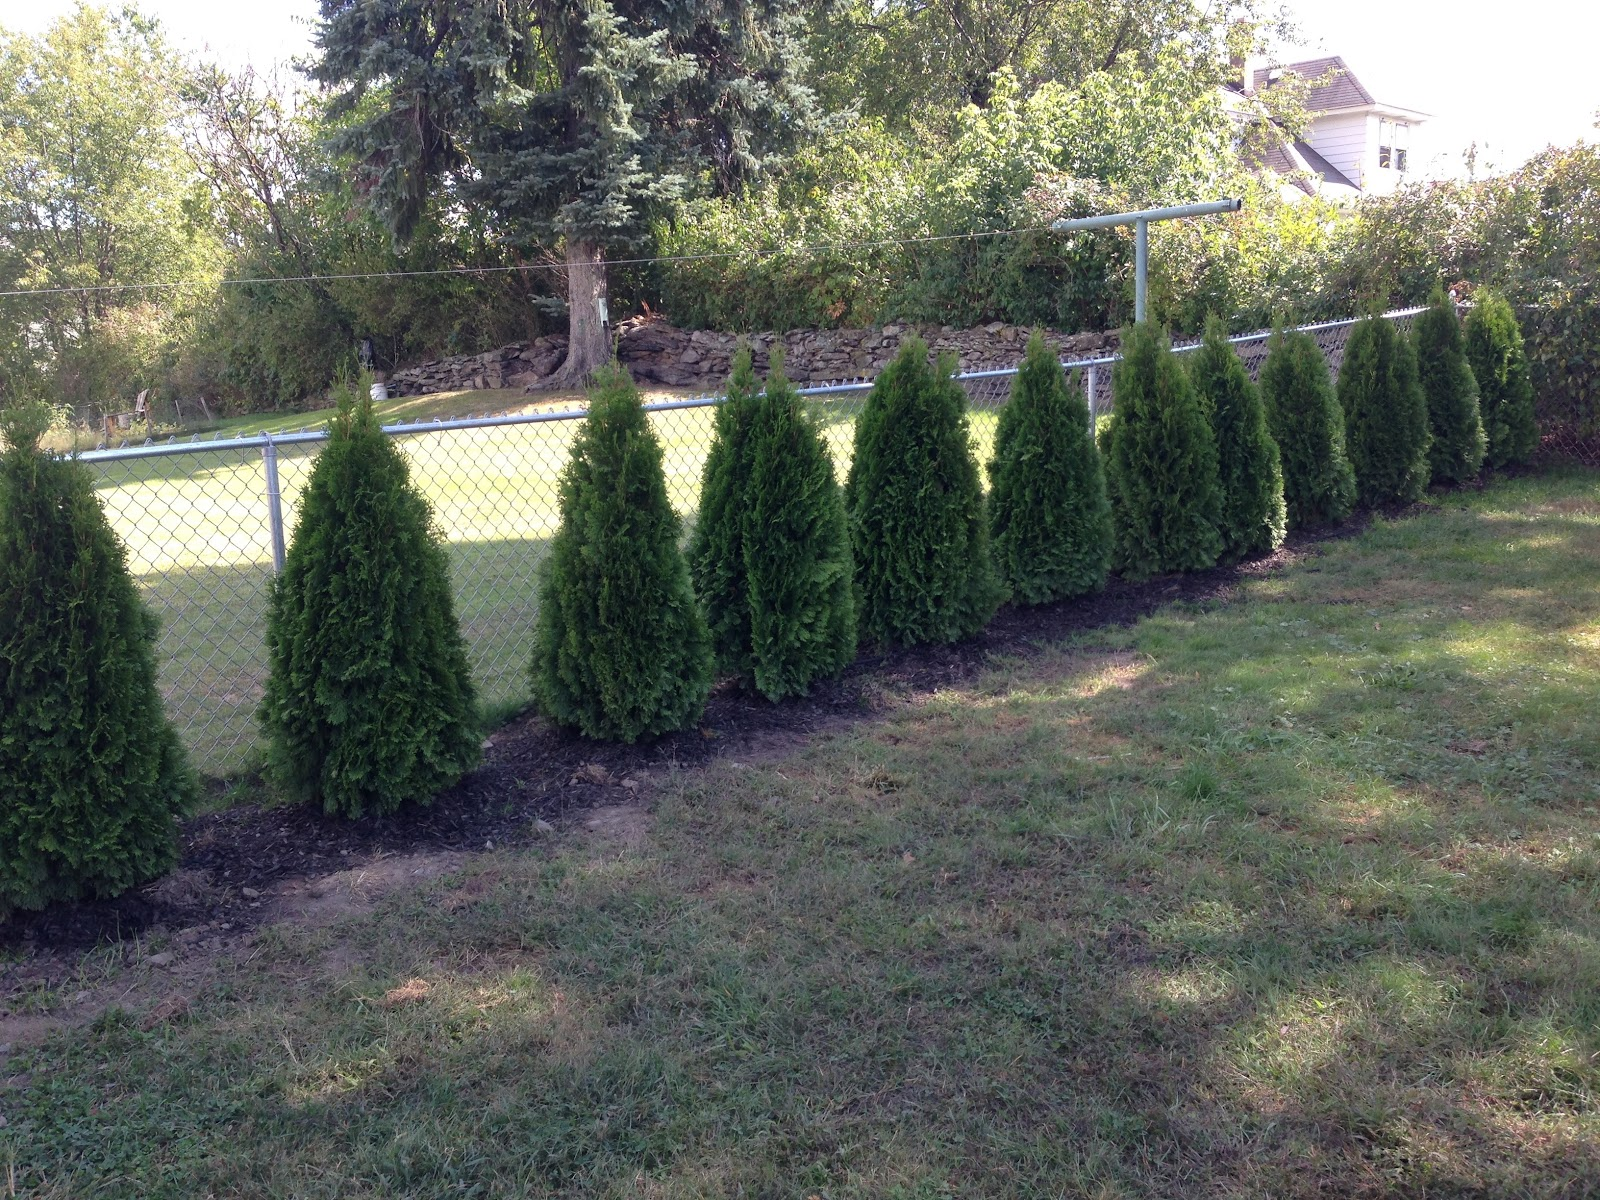 Emerald green arborvitae, planted Summer 2014 along the fence in my backyard